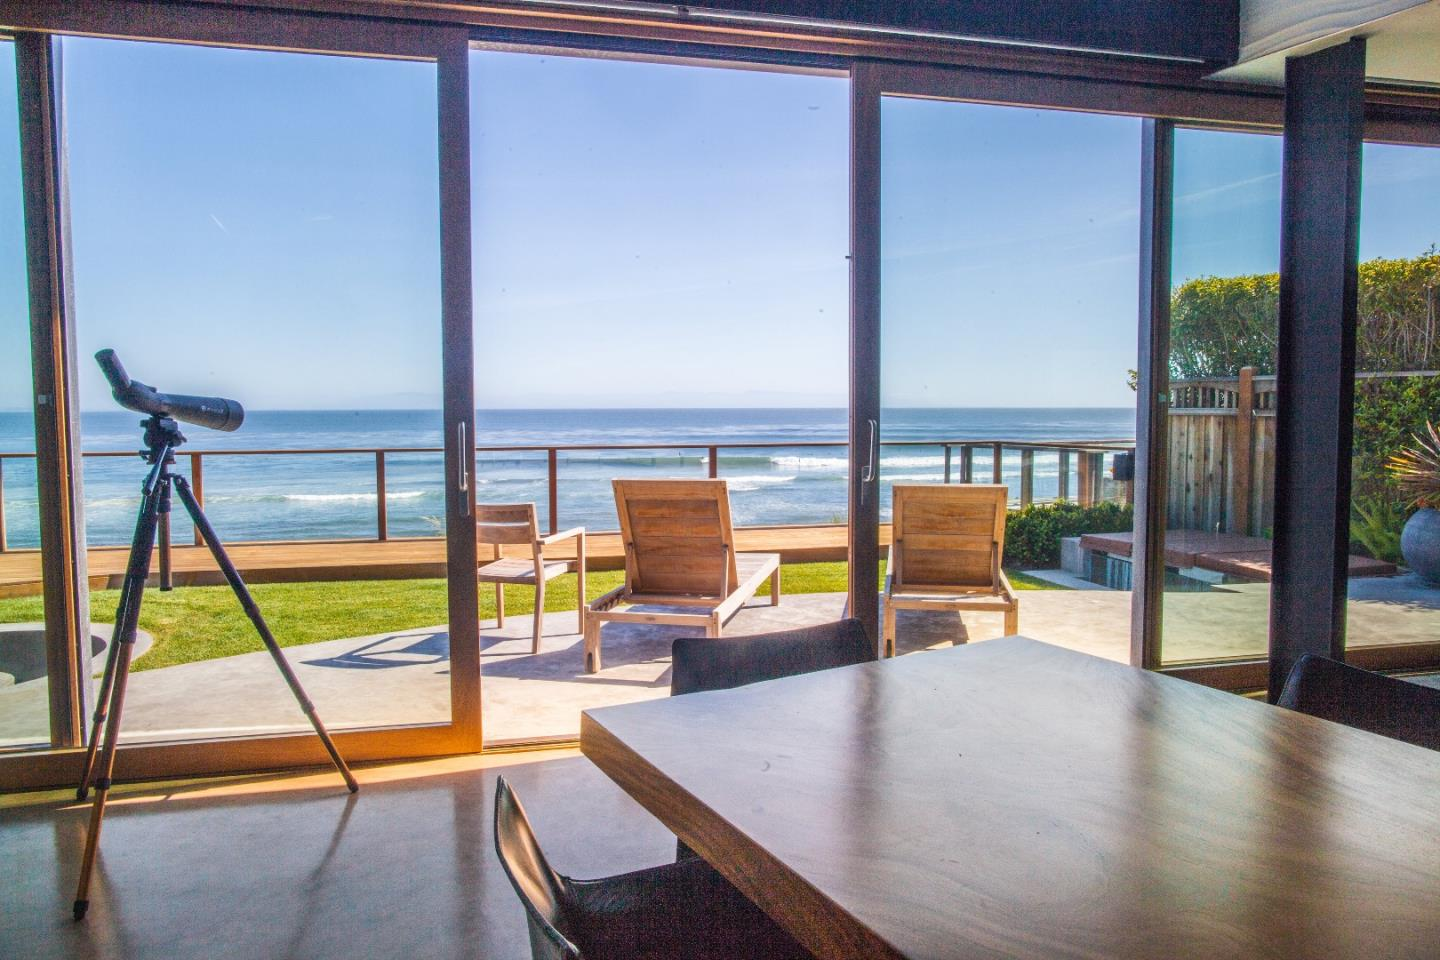 Additional photo for property listing at 4330 Opal Cliff  Santa Cruz, カリフォルニア 95062 アメリカ合衆国